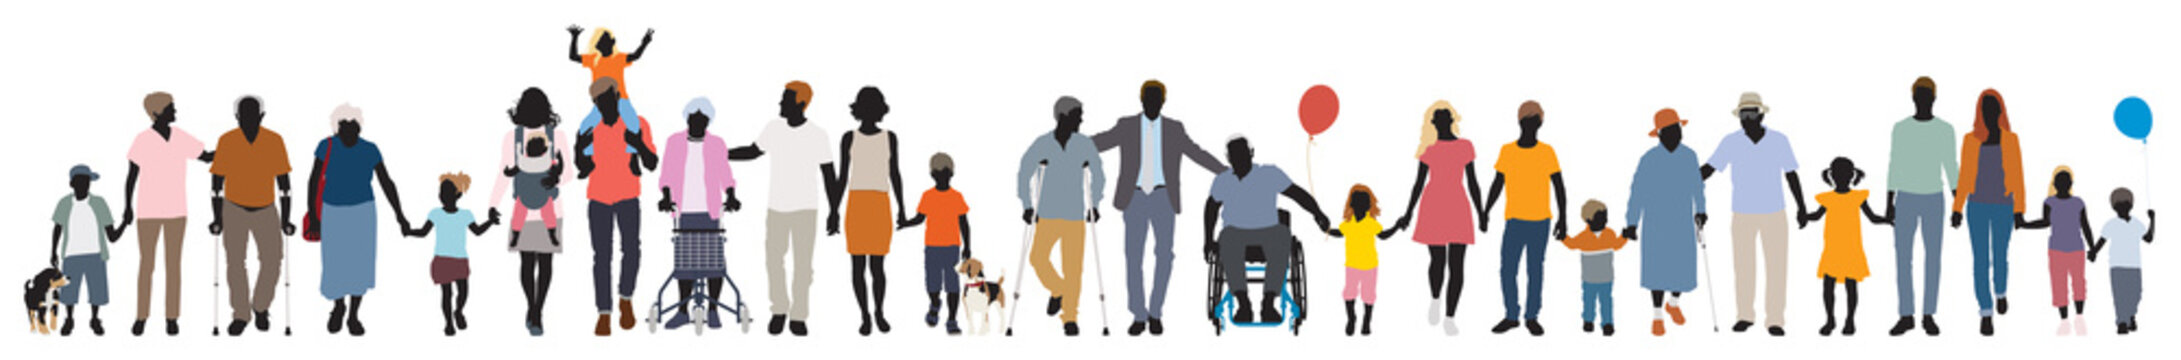 Editable vector silhouettes of people walking together